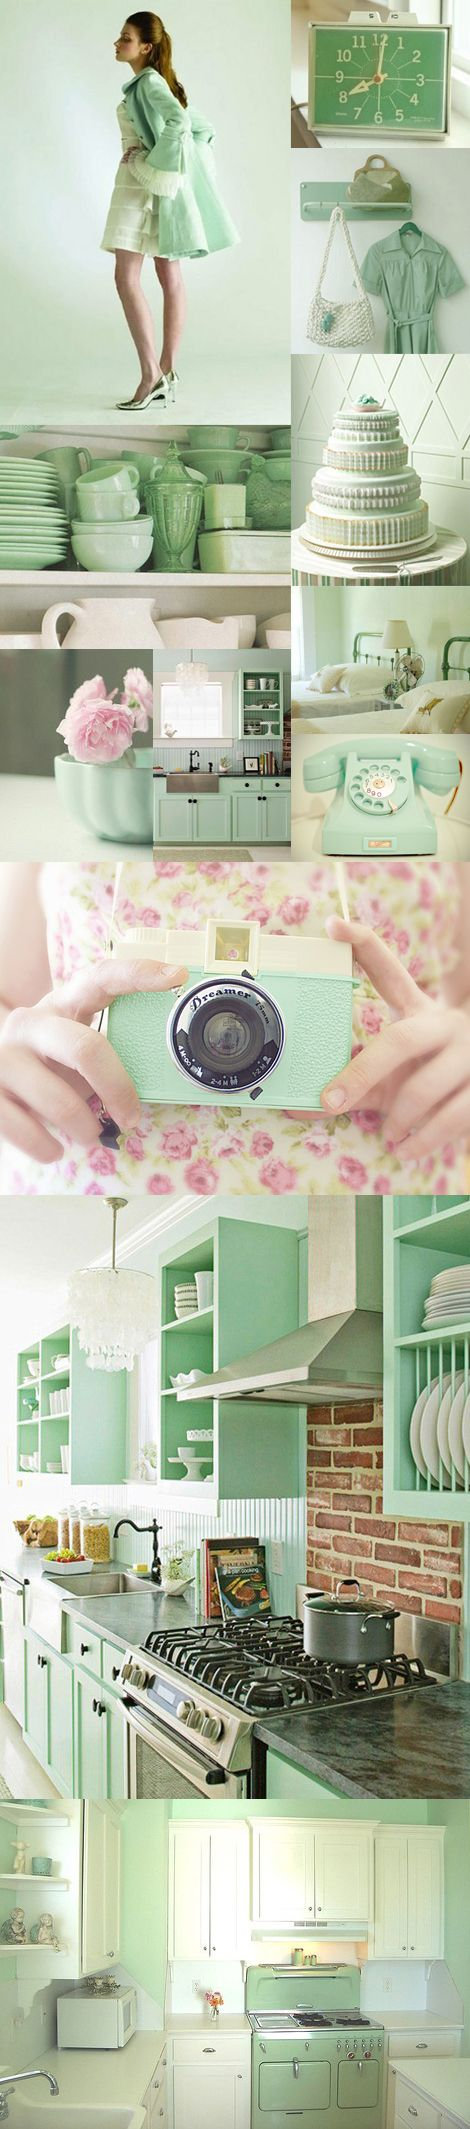 Mint green color trend interior deco woonblog